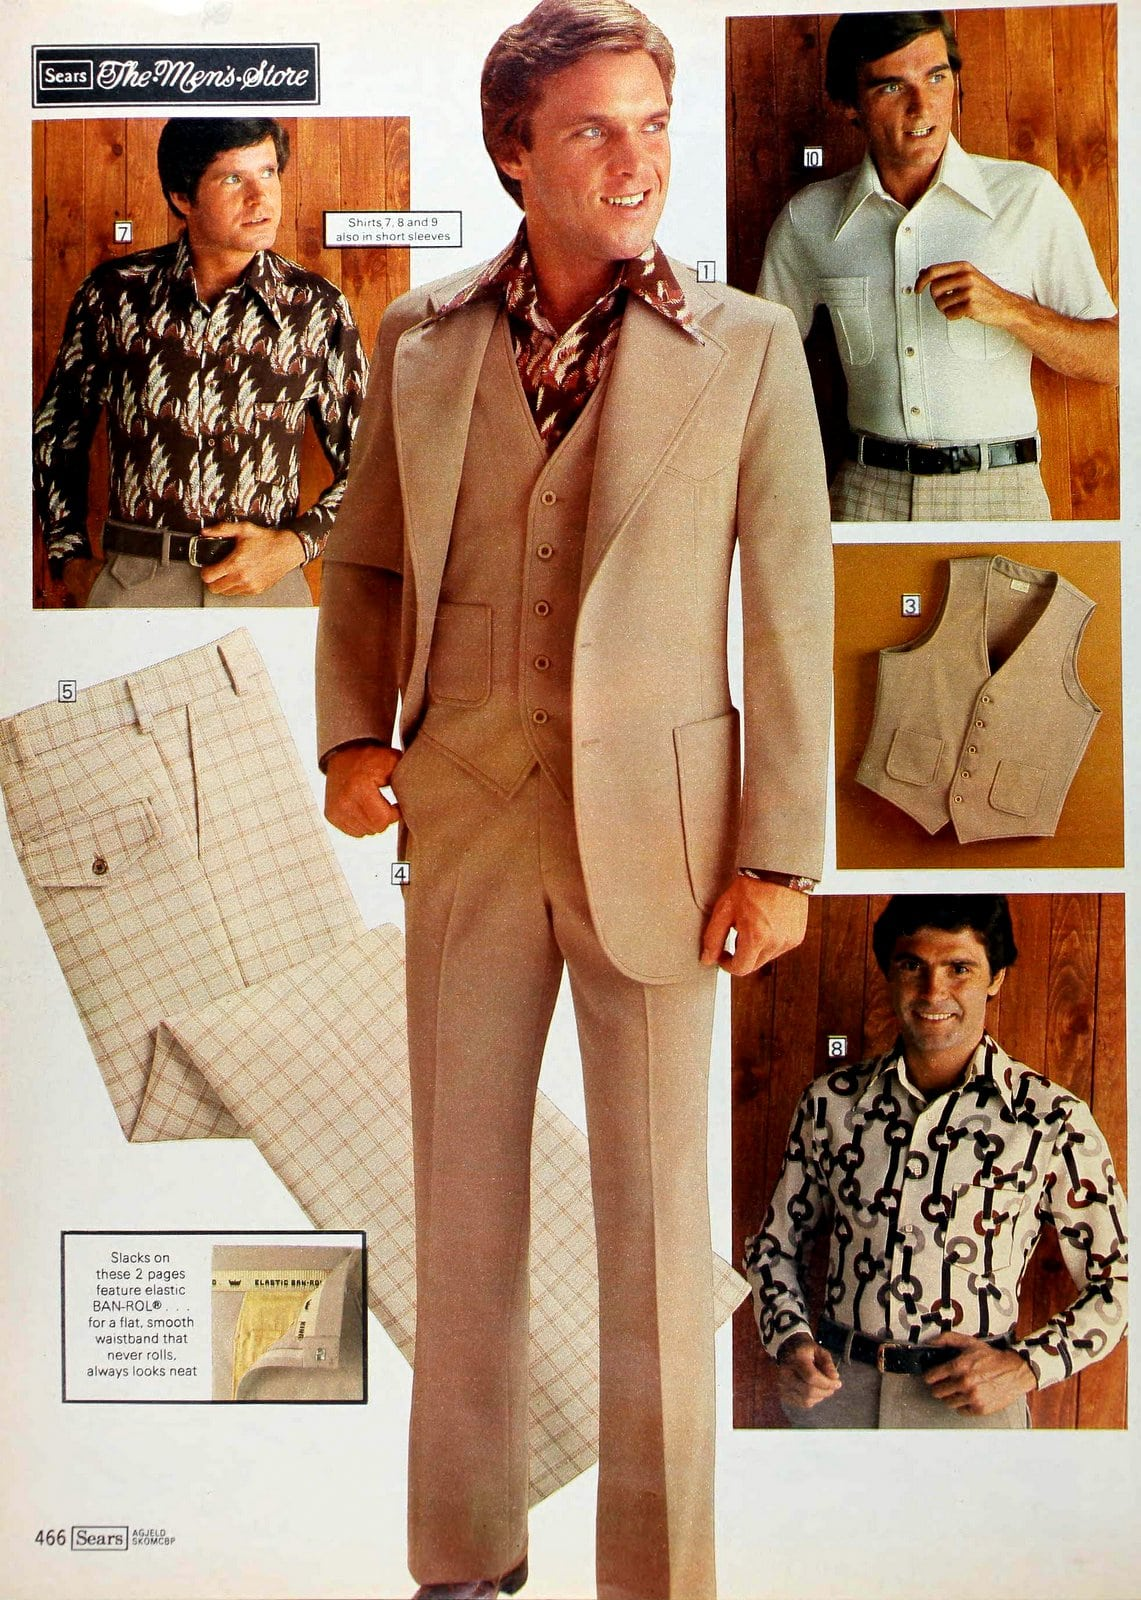 Sears suits and menswear from the 1970s (3)